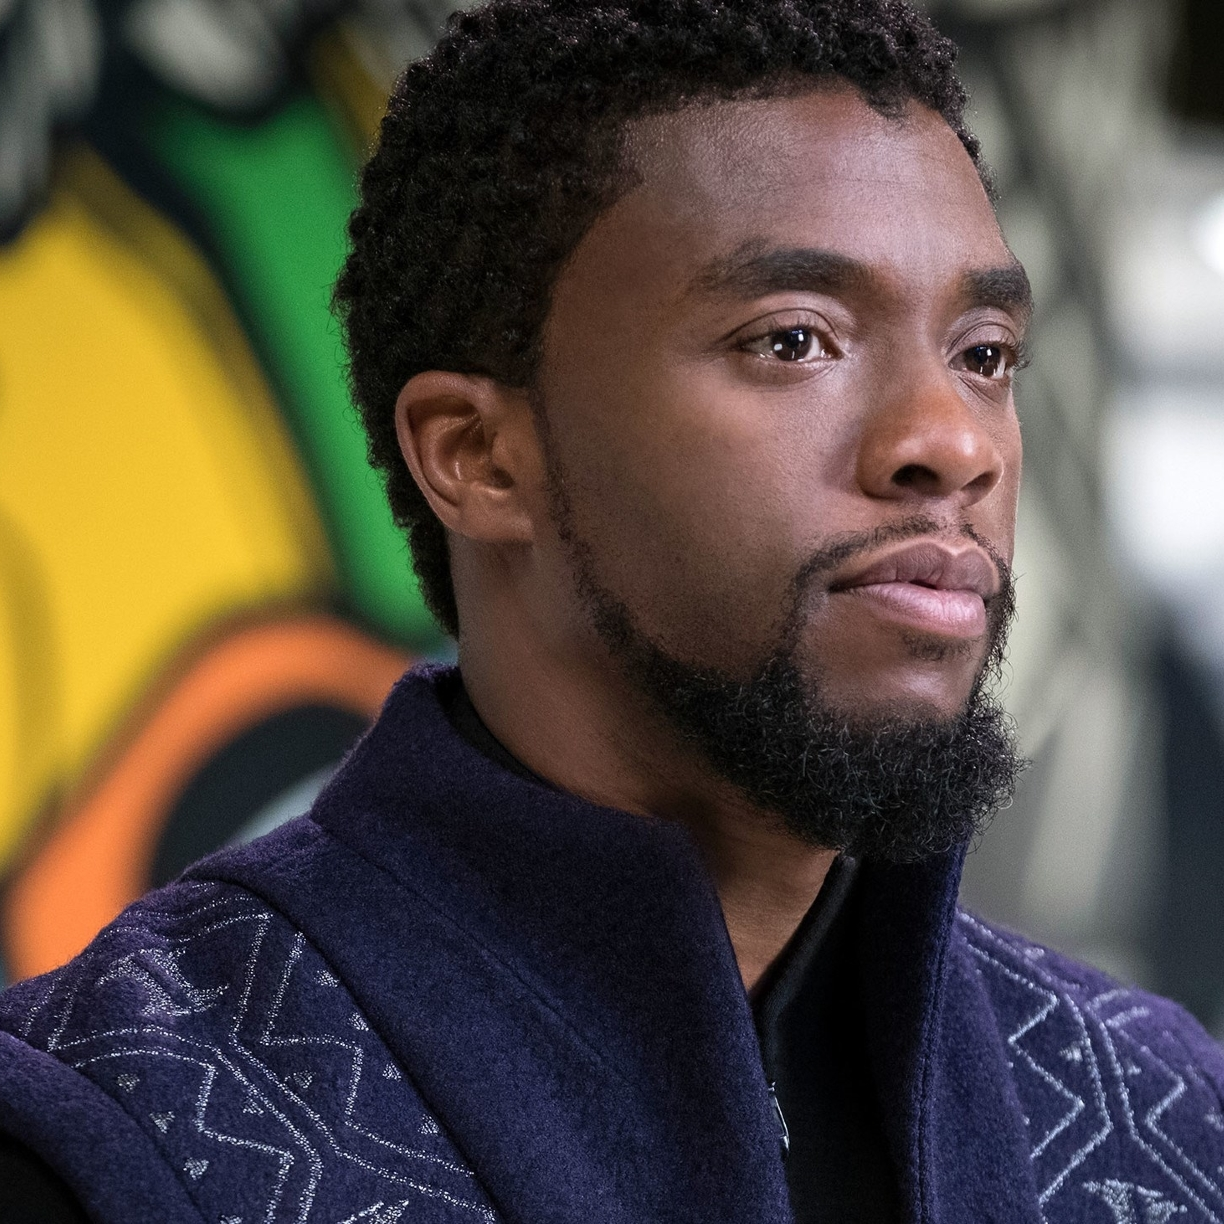 1224x1224 Chadwick Boseman Black Panther 1224x1224 Resolution Wallpaper Hd Movies 4k Wallpapers Images Photos And Background